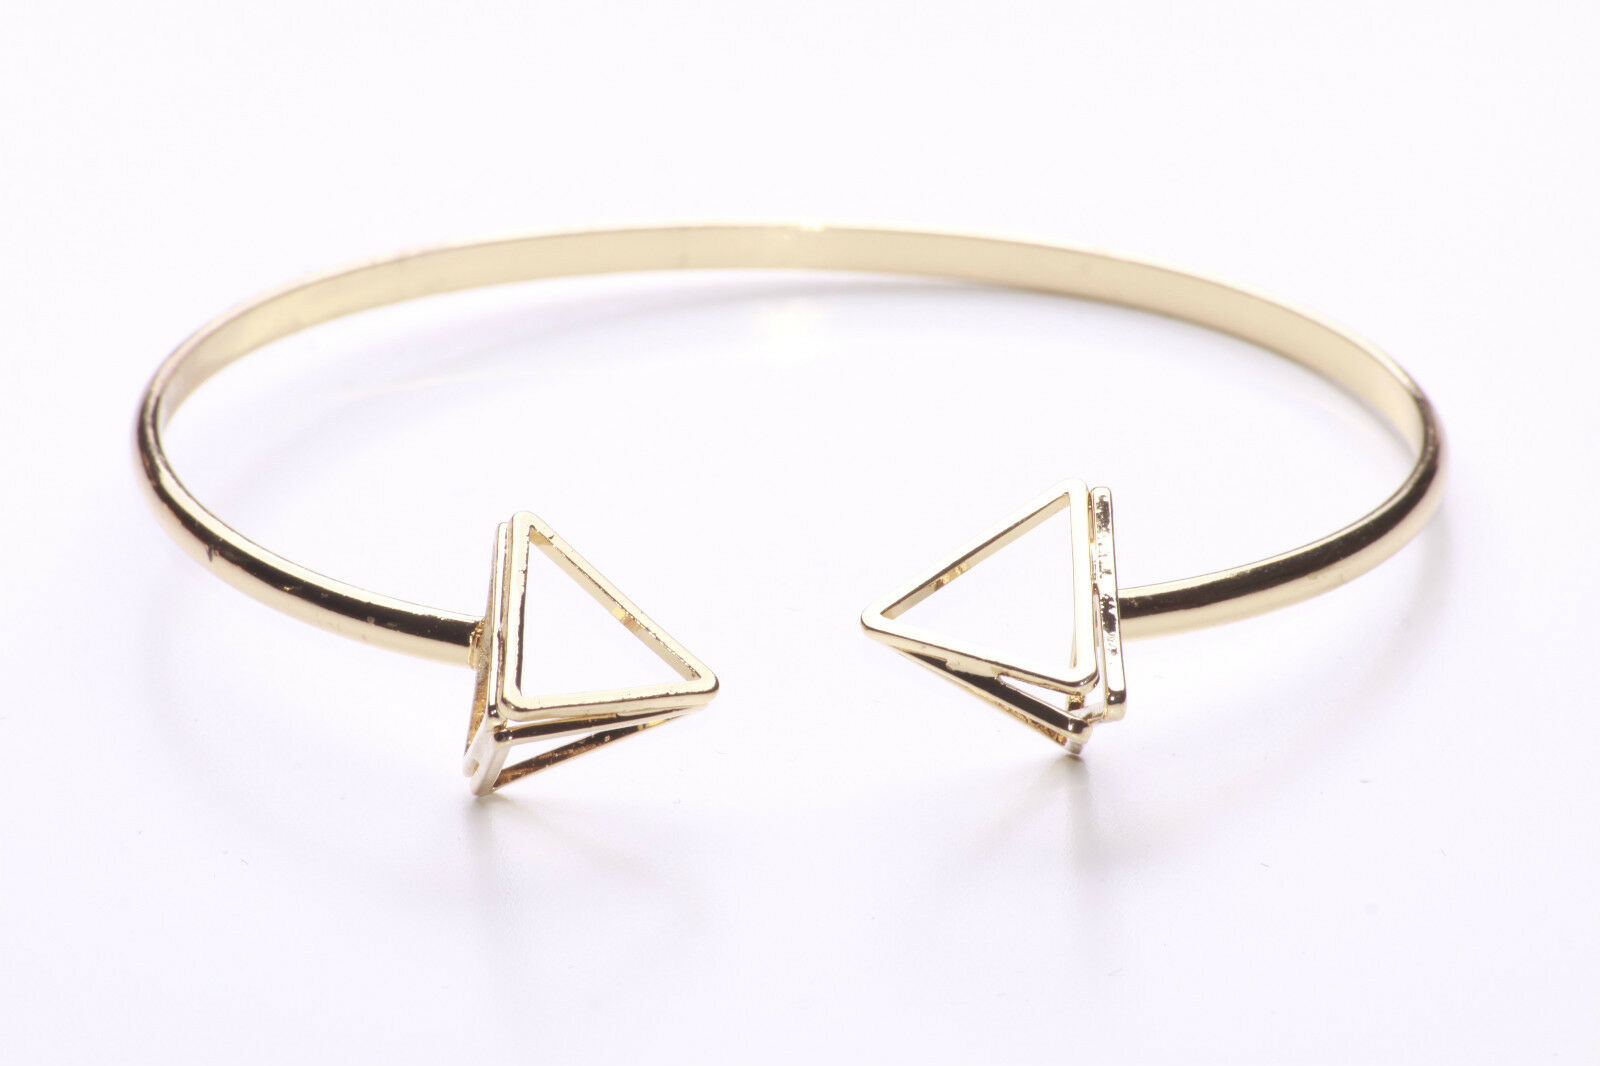 Details about LATEST TREND GOLD BANGLE WITH GEOMETRIC PYRAMID FEATURES,  OPEN-ENDED (NS3)